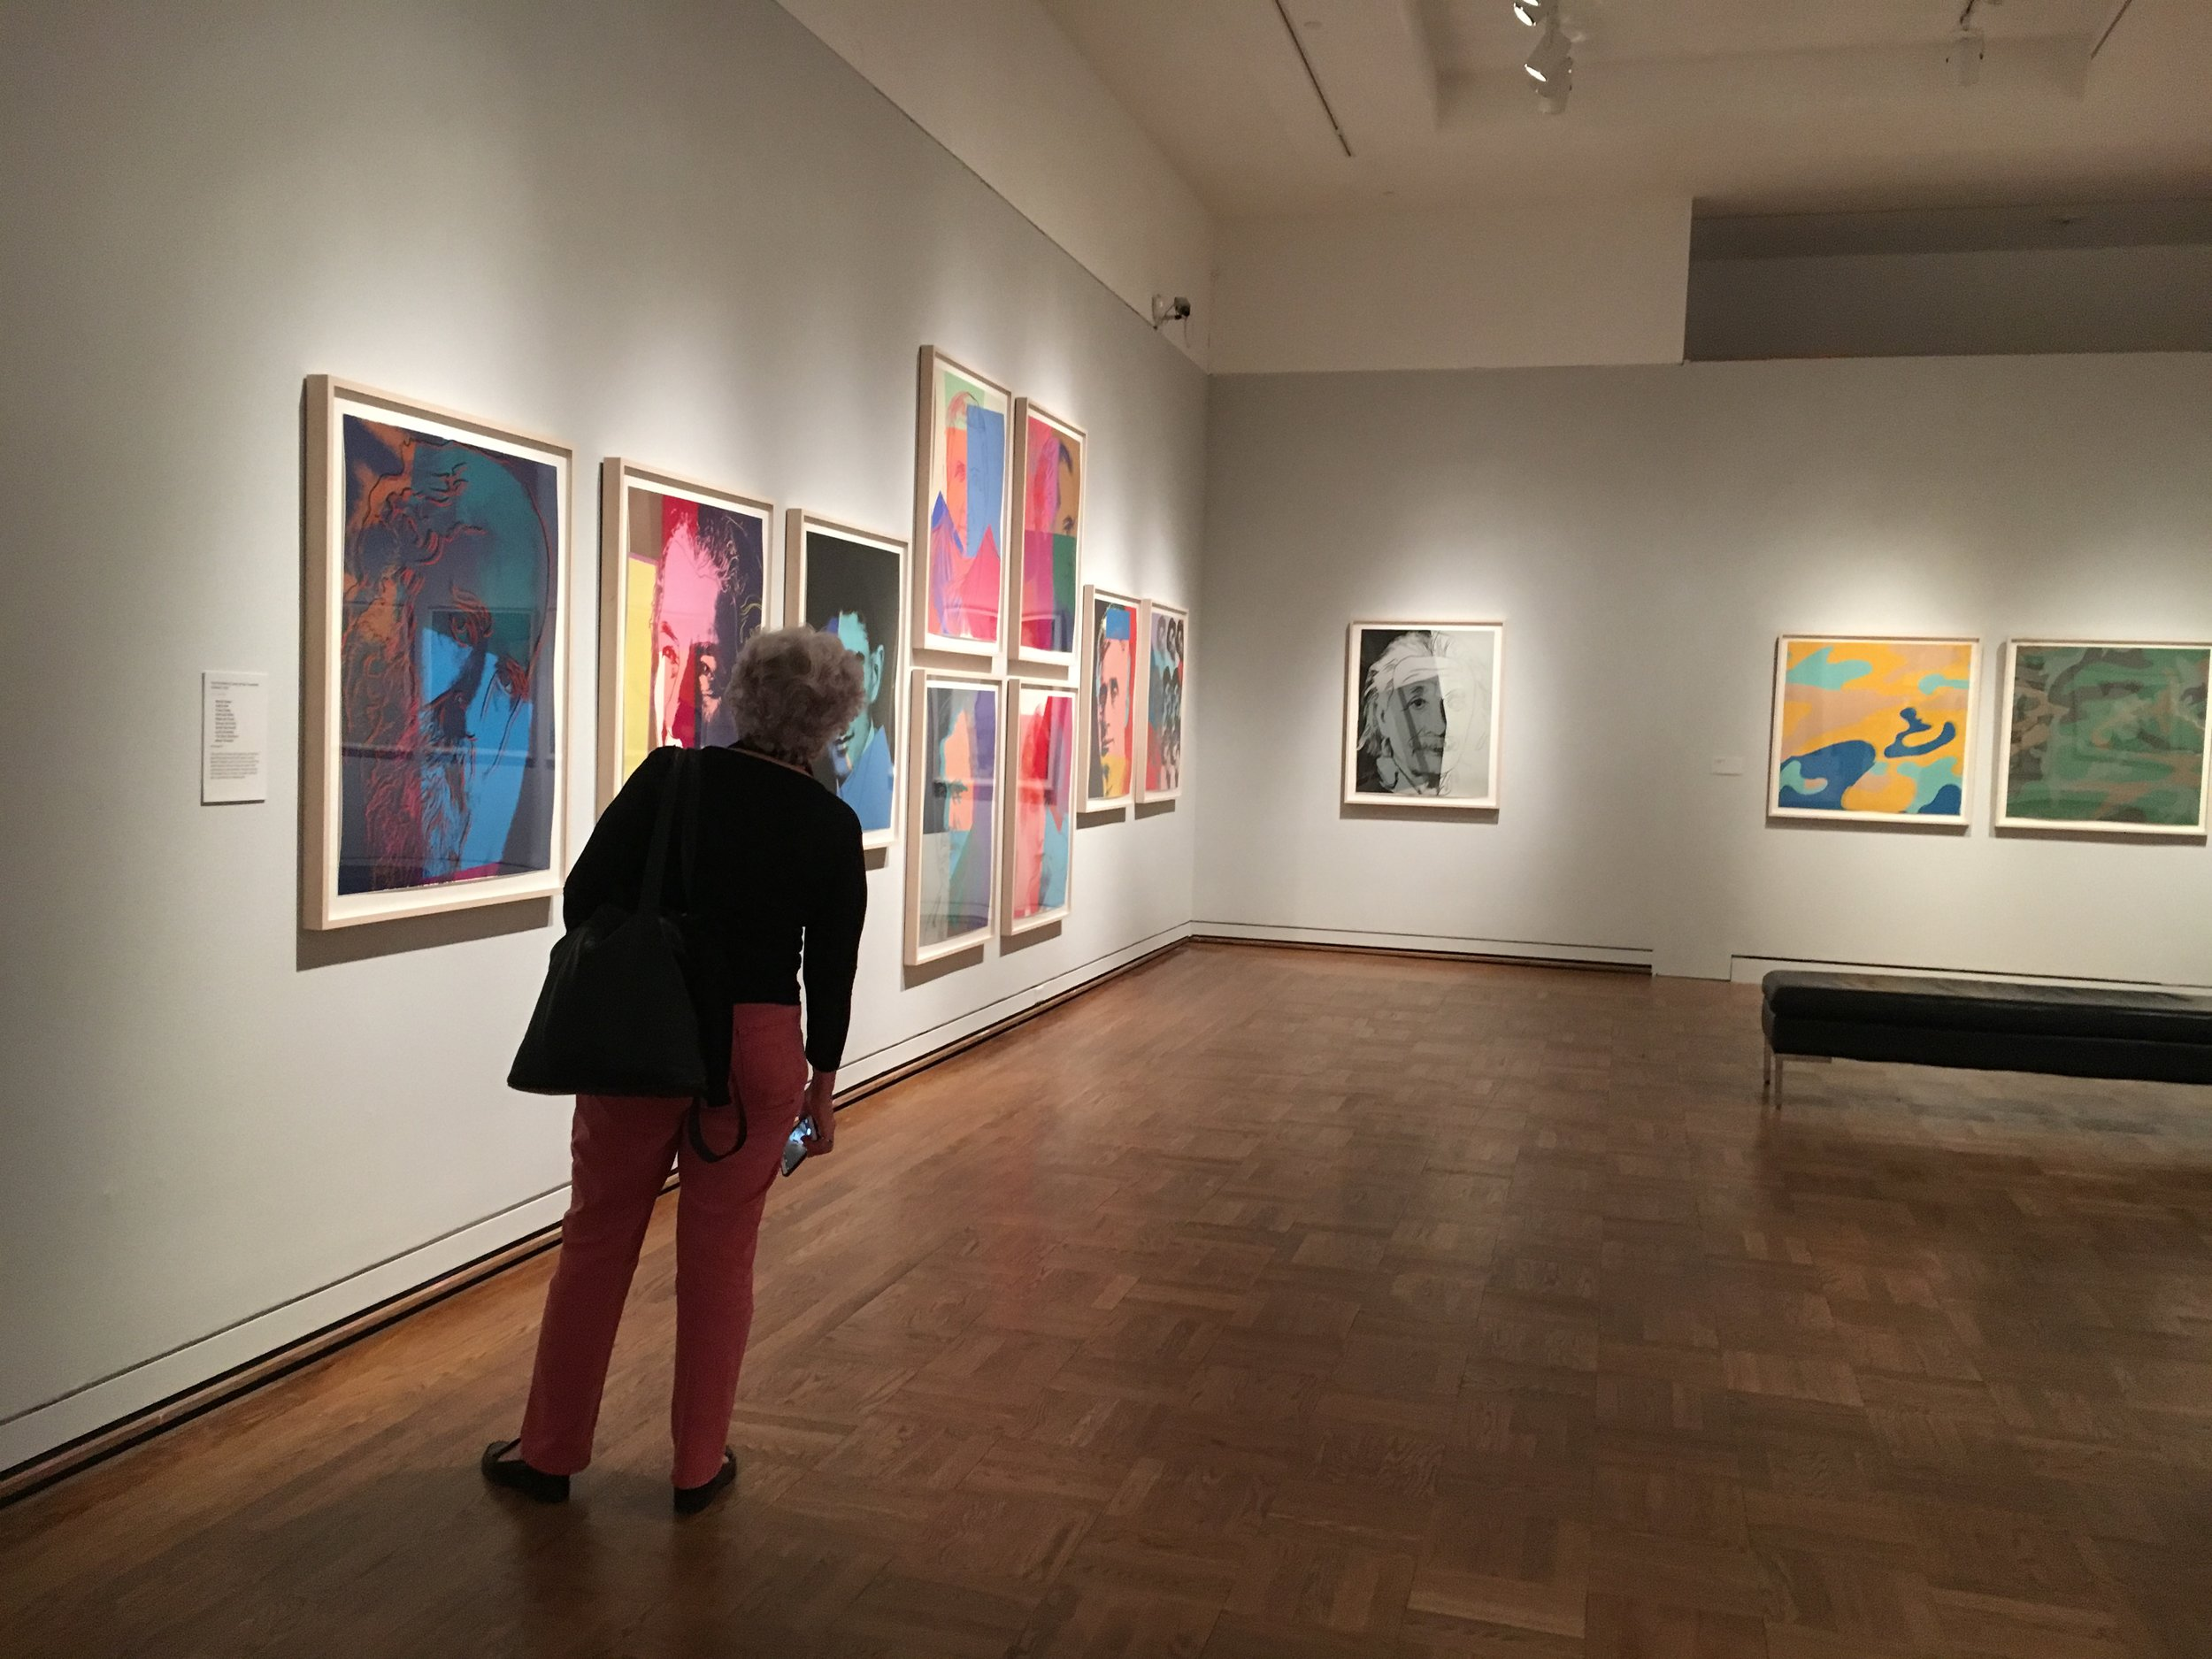 Andy-Warhol-Exhibition_Portland-Art-Museum_Looking